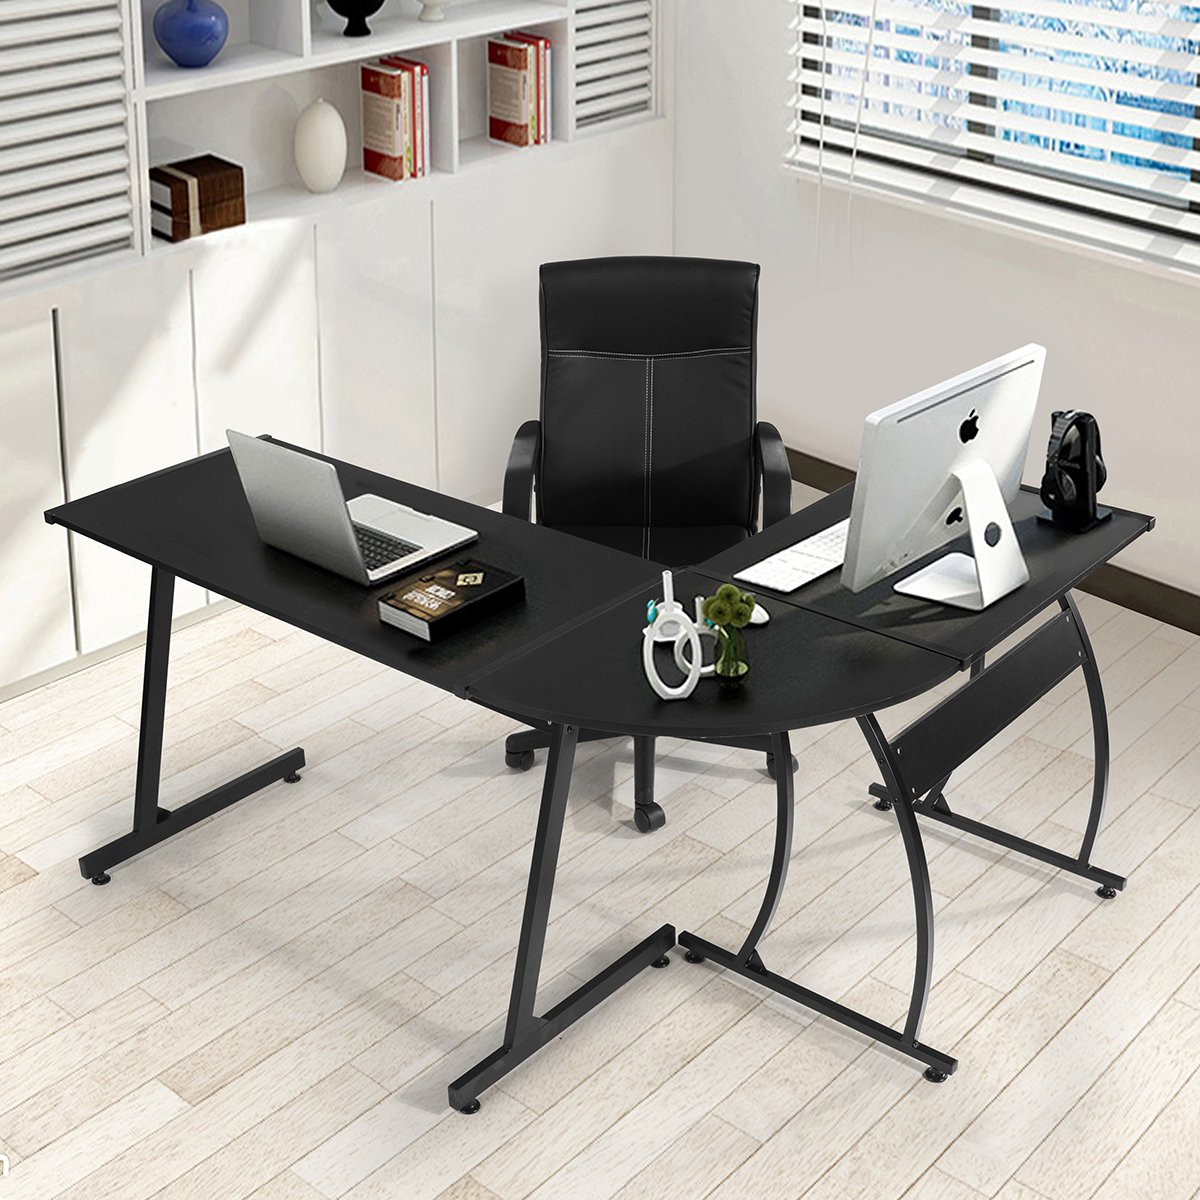 office wood desk. Office Corner Desk Coavas L-Shaped Wood Large PC Gaming Table Computer Workstation For Home And Use, Black